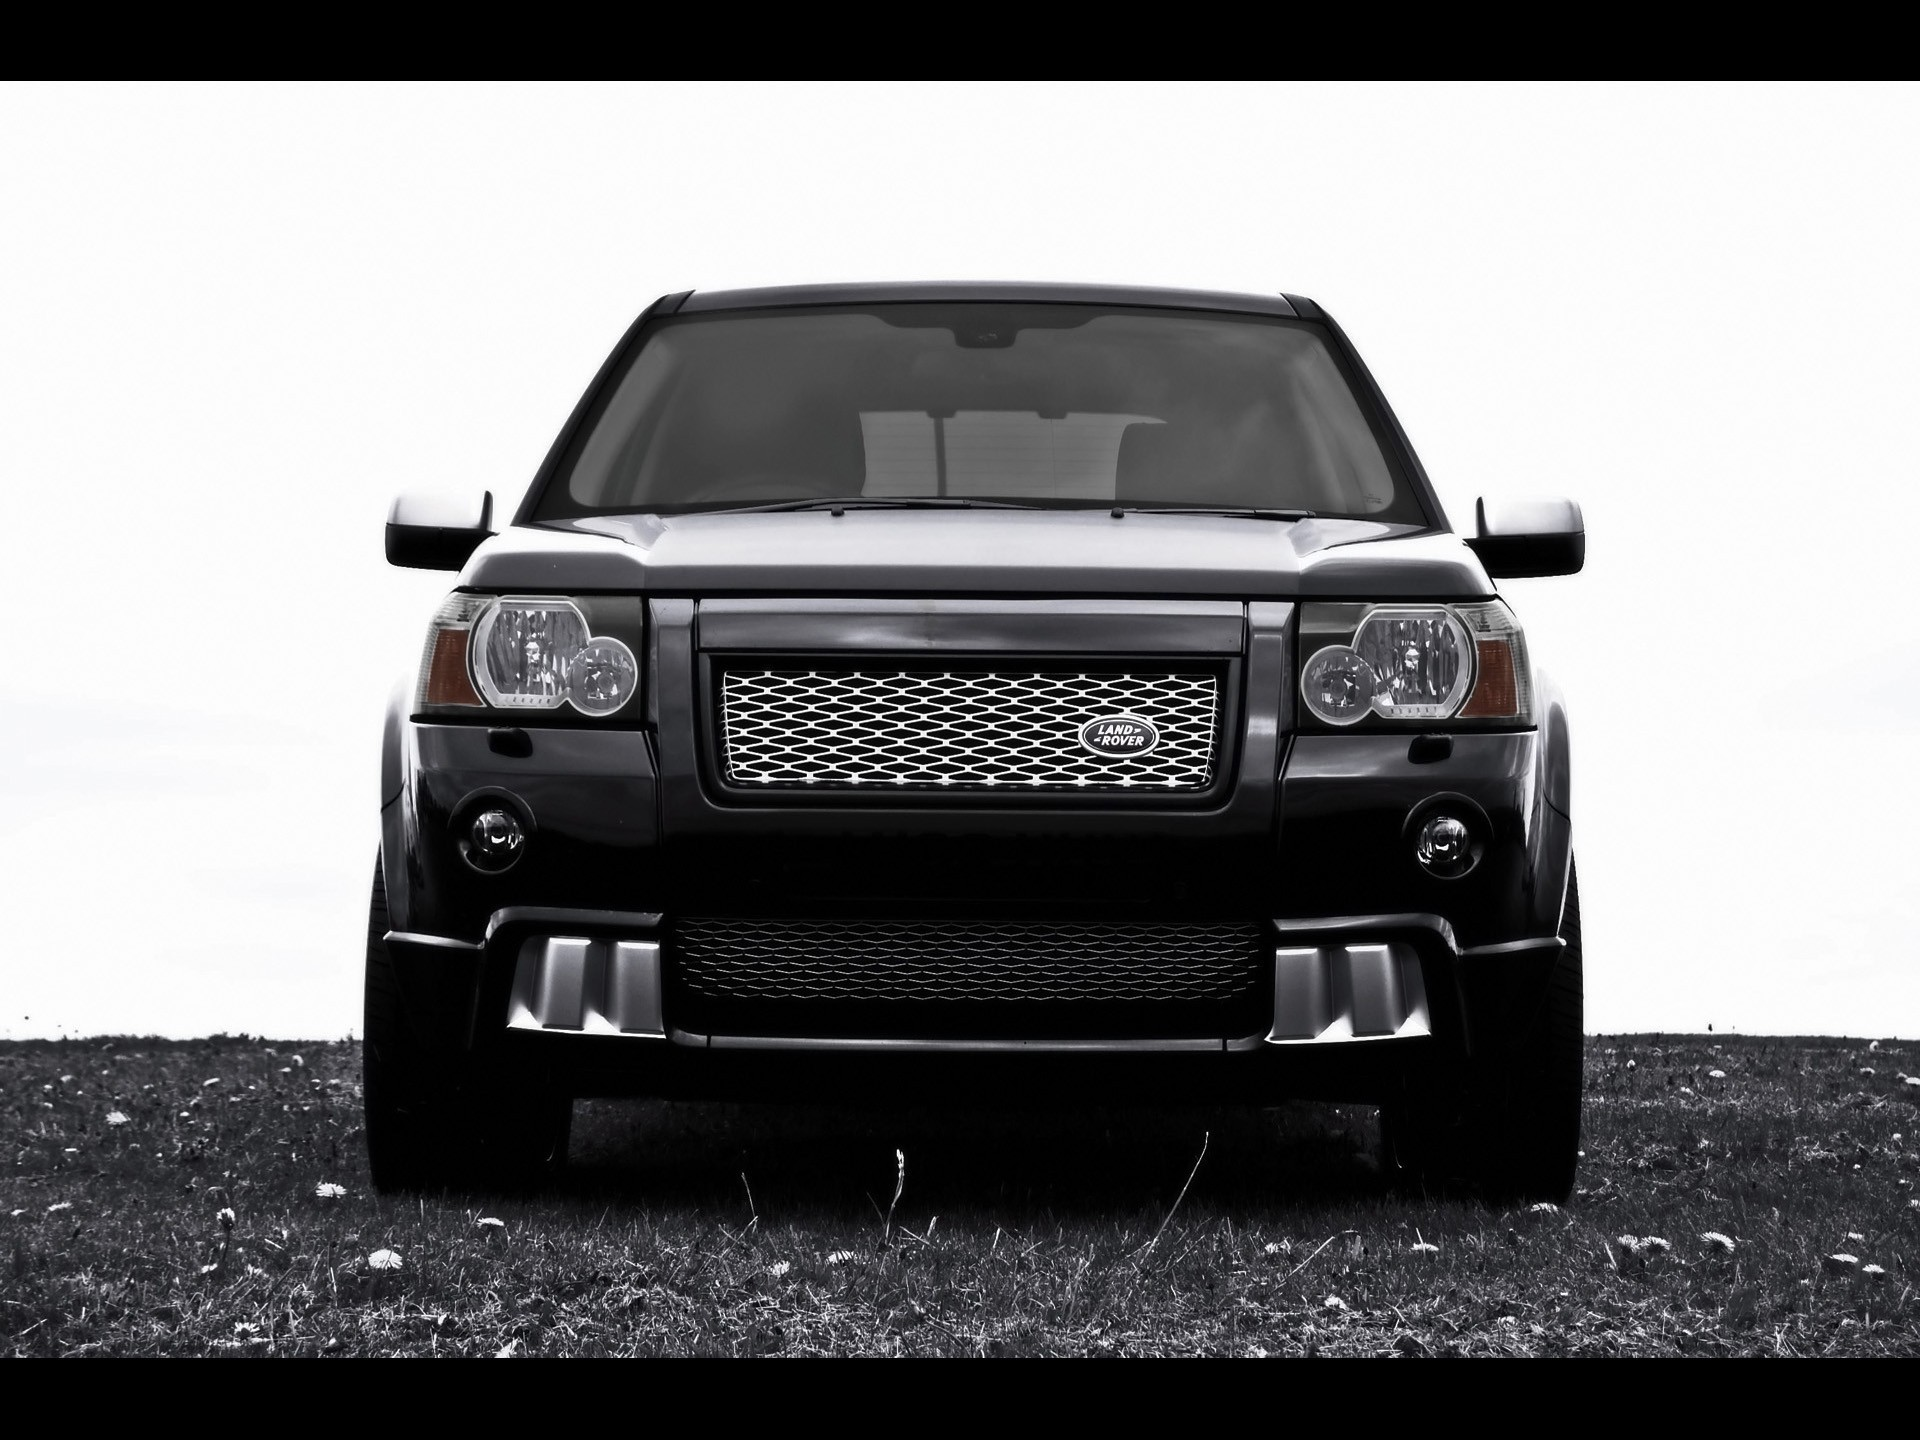 cars project Land Rover HD Wallpaper